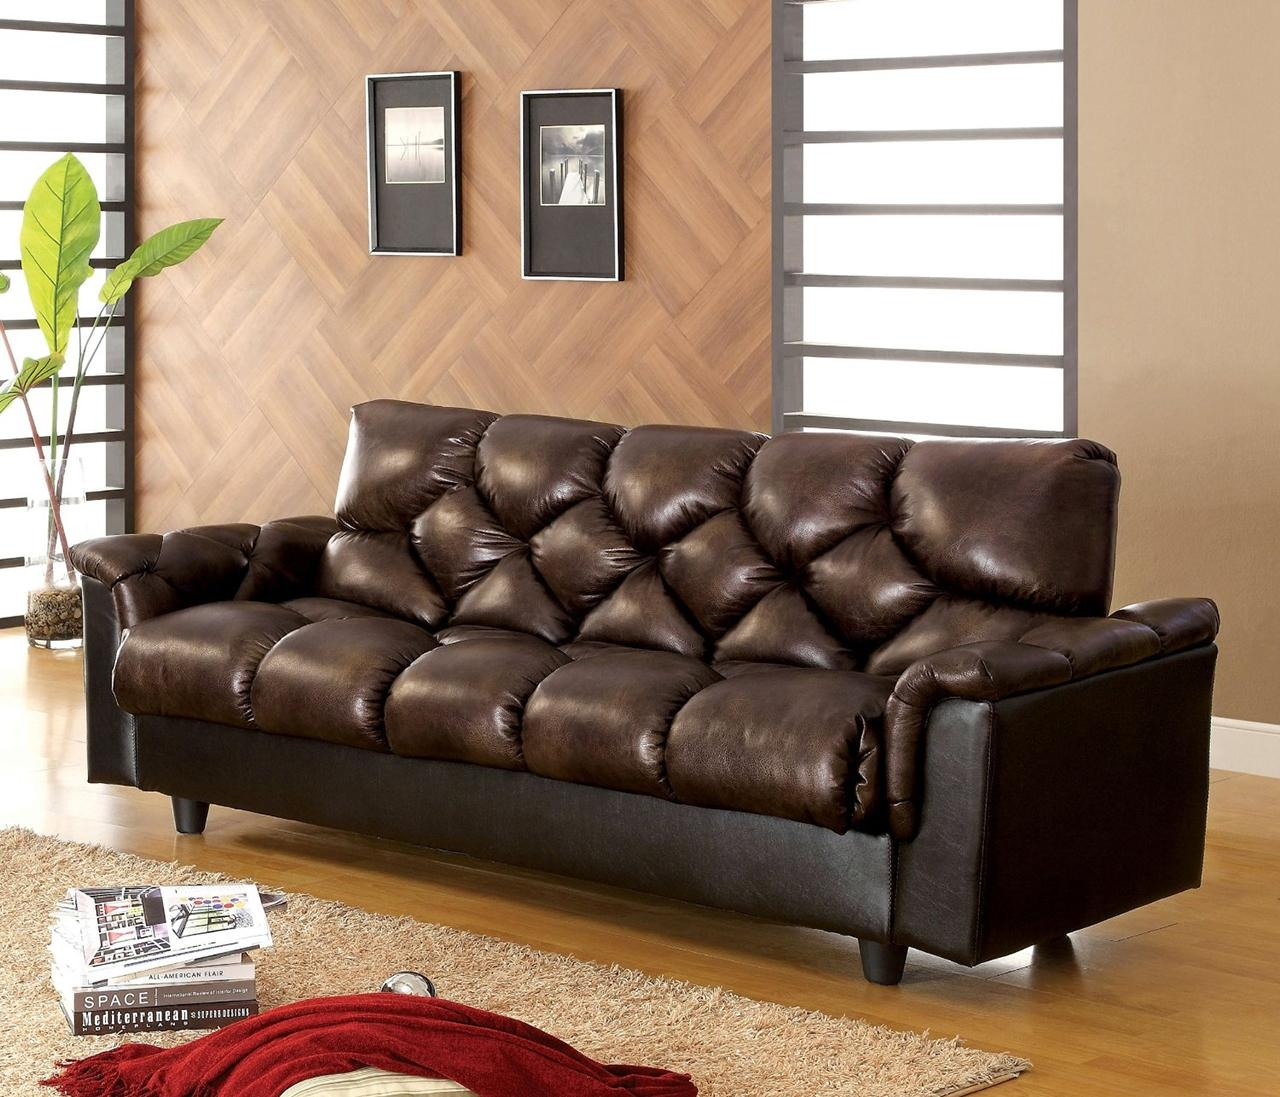 25 Best Sleeper Sofa Beds To Buy In 2017 Regarding Leather Storage Sofas  (Image 1